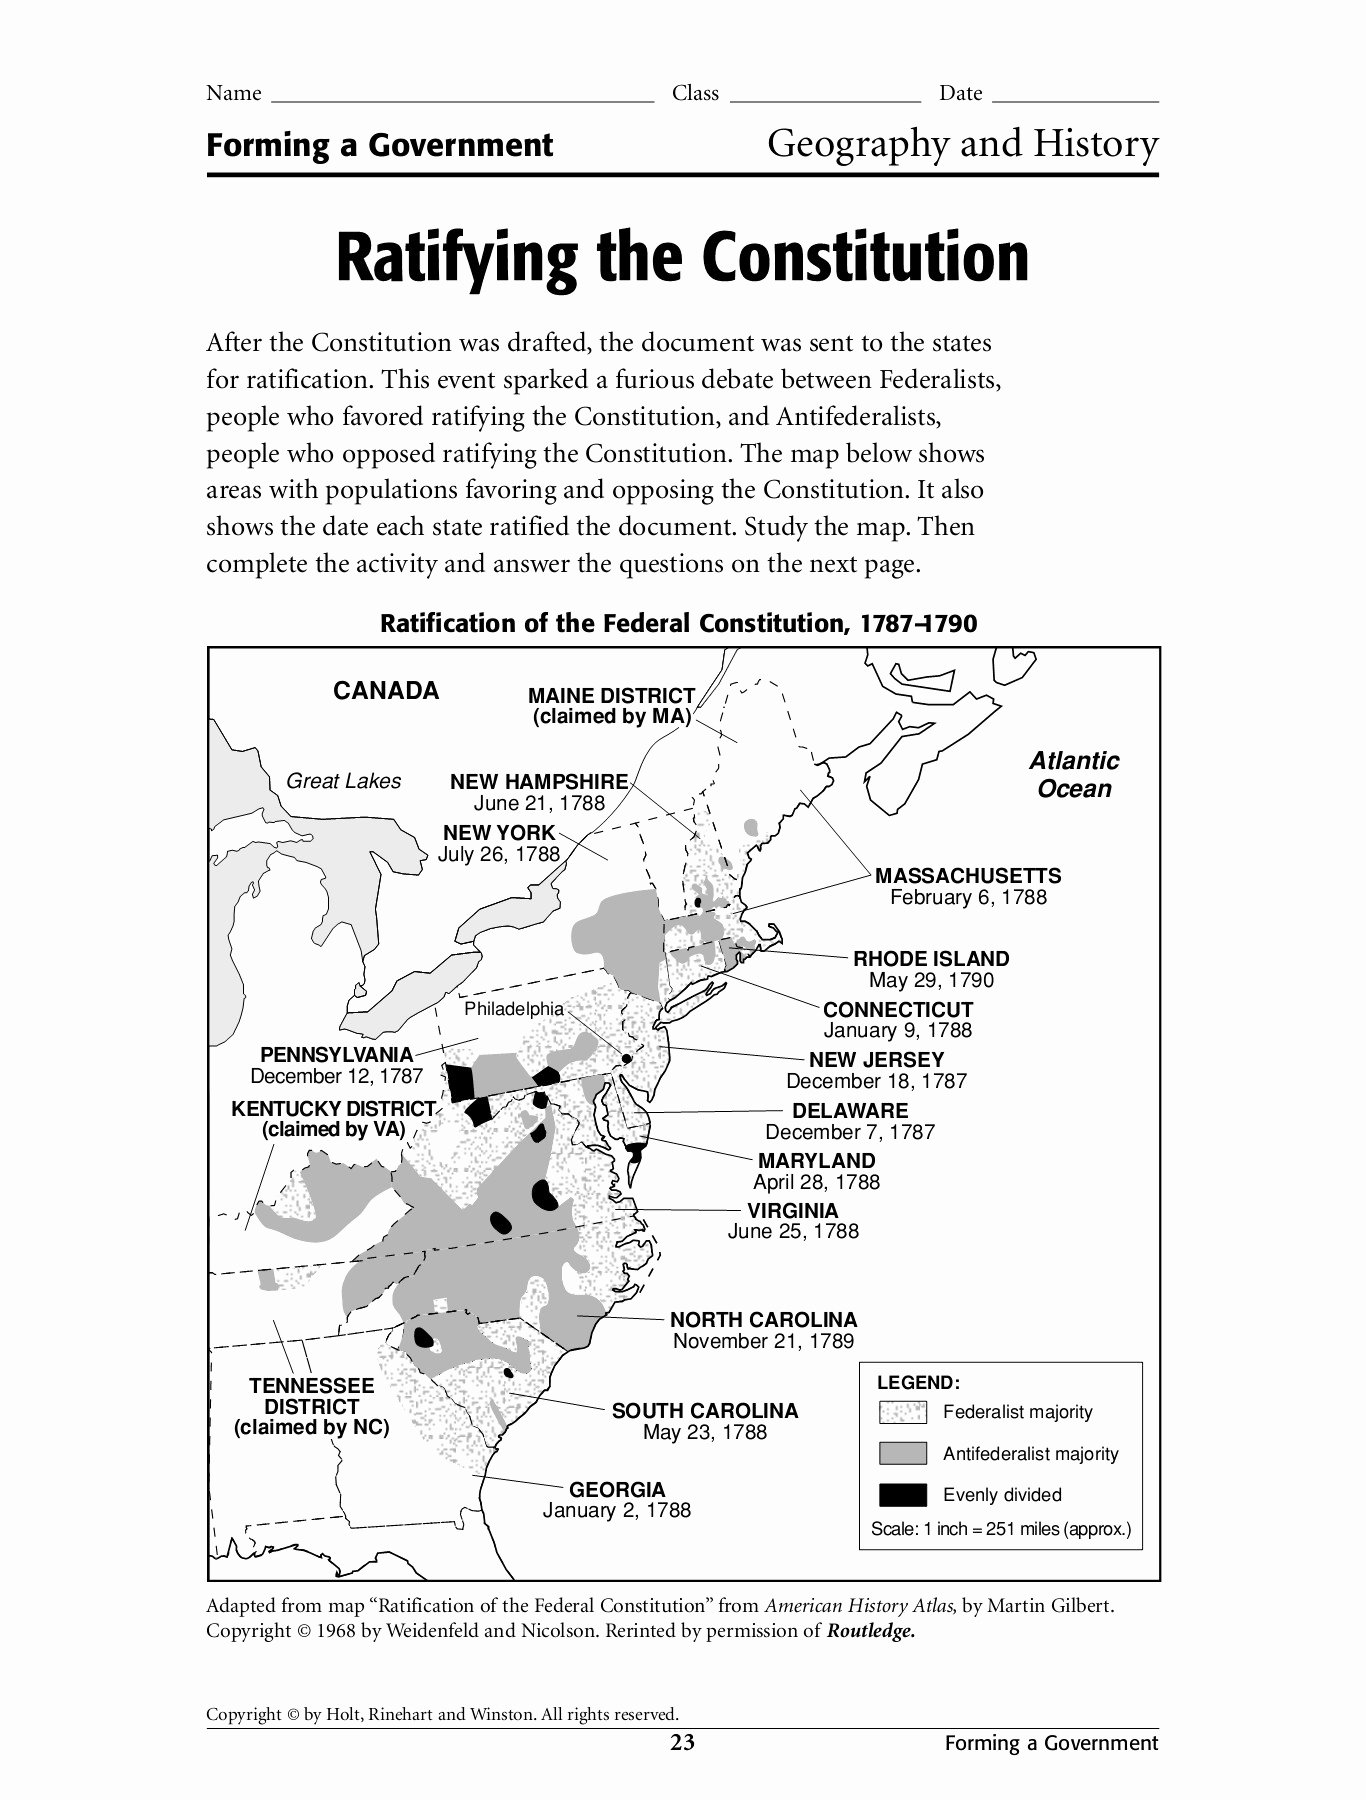 Ratifying the Constitution Worksheet Answers Best Of Ratifying the Constitution Neomin Pages 1 4 Flip